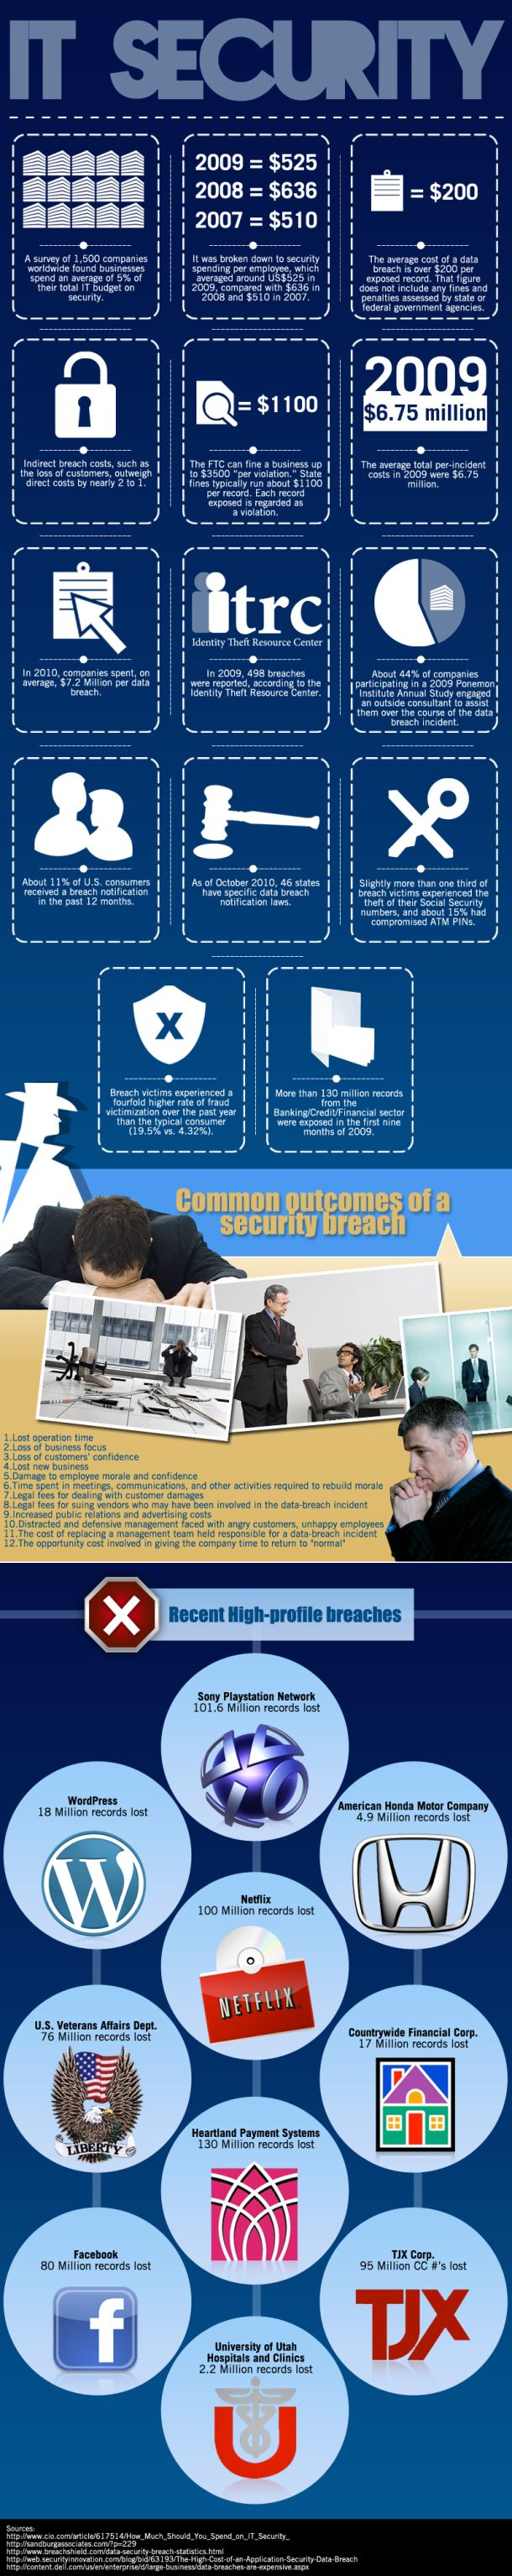 IT Security[INFOGRAPHIC]